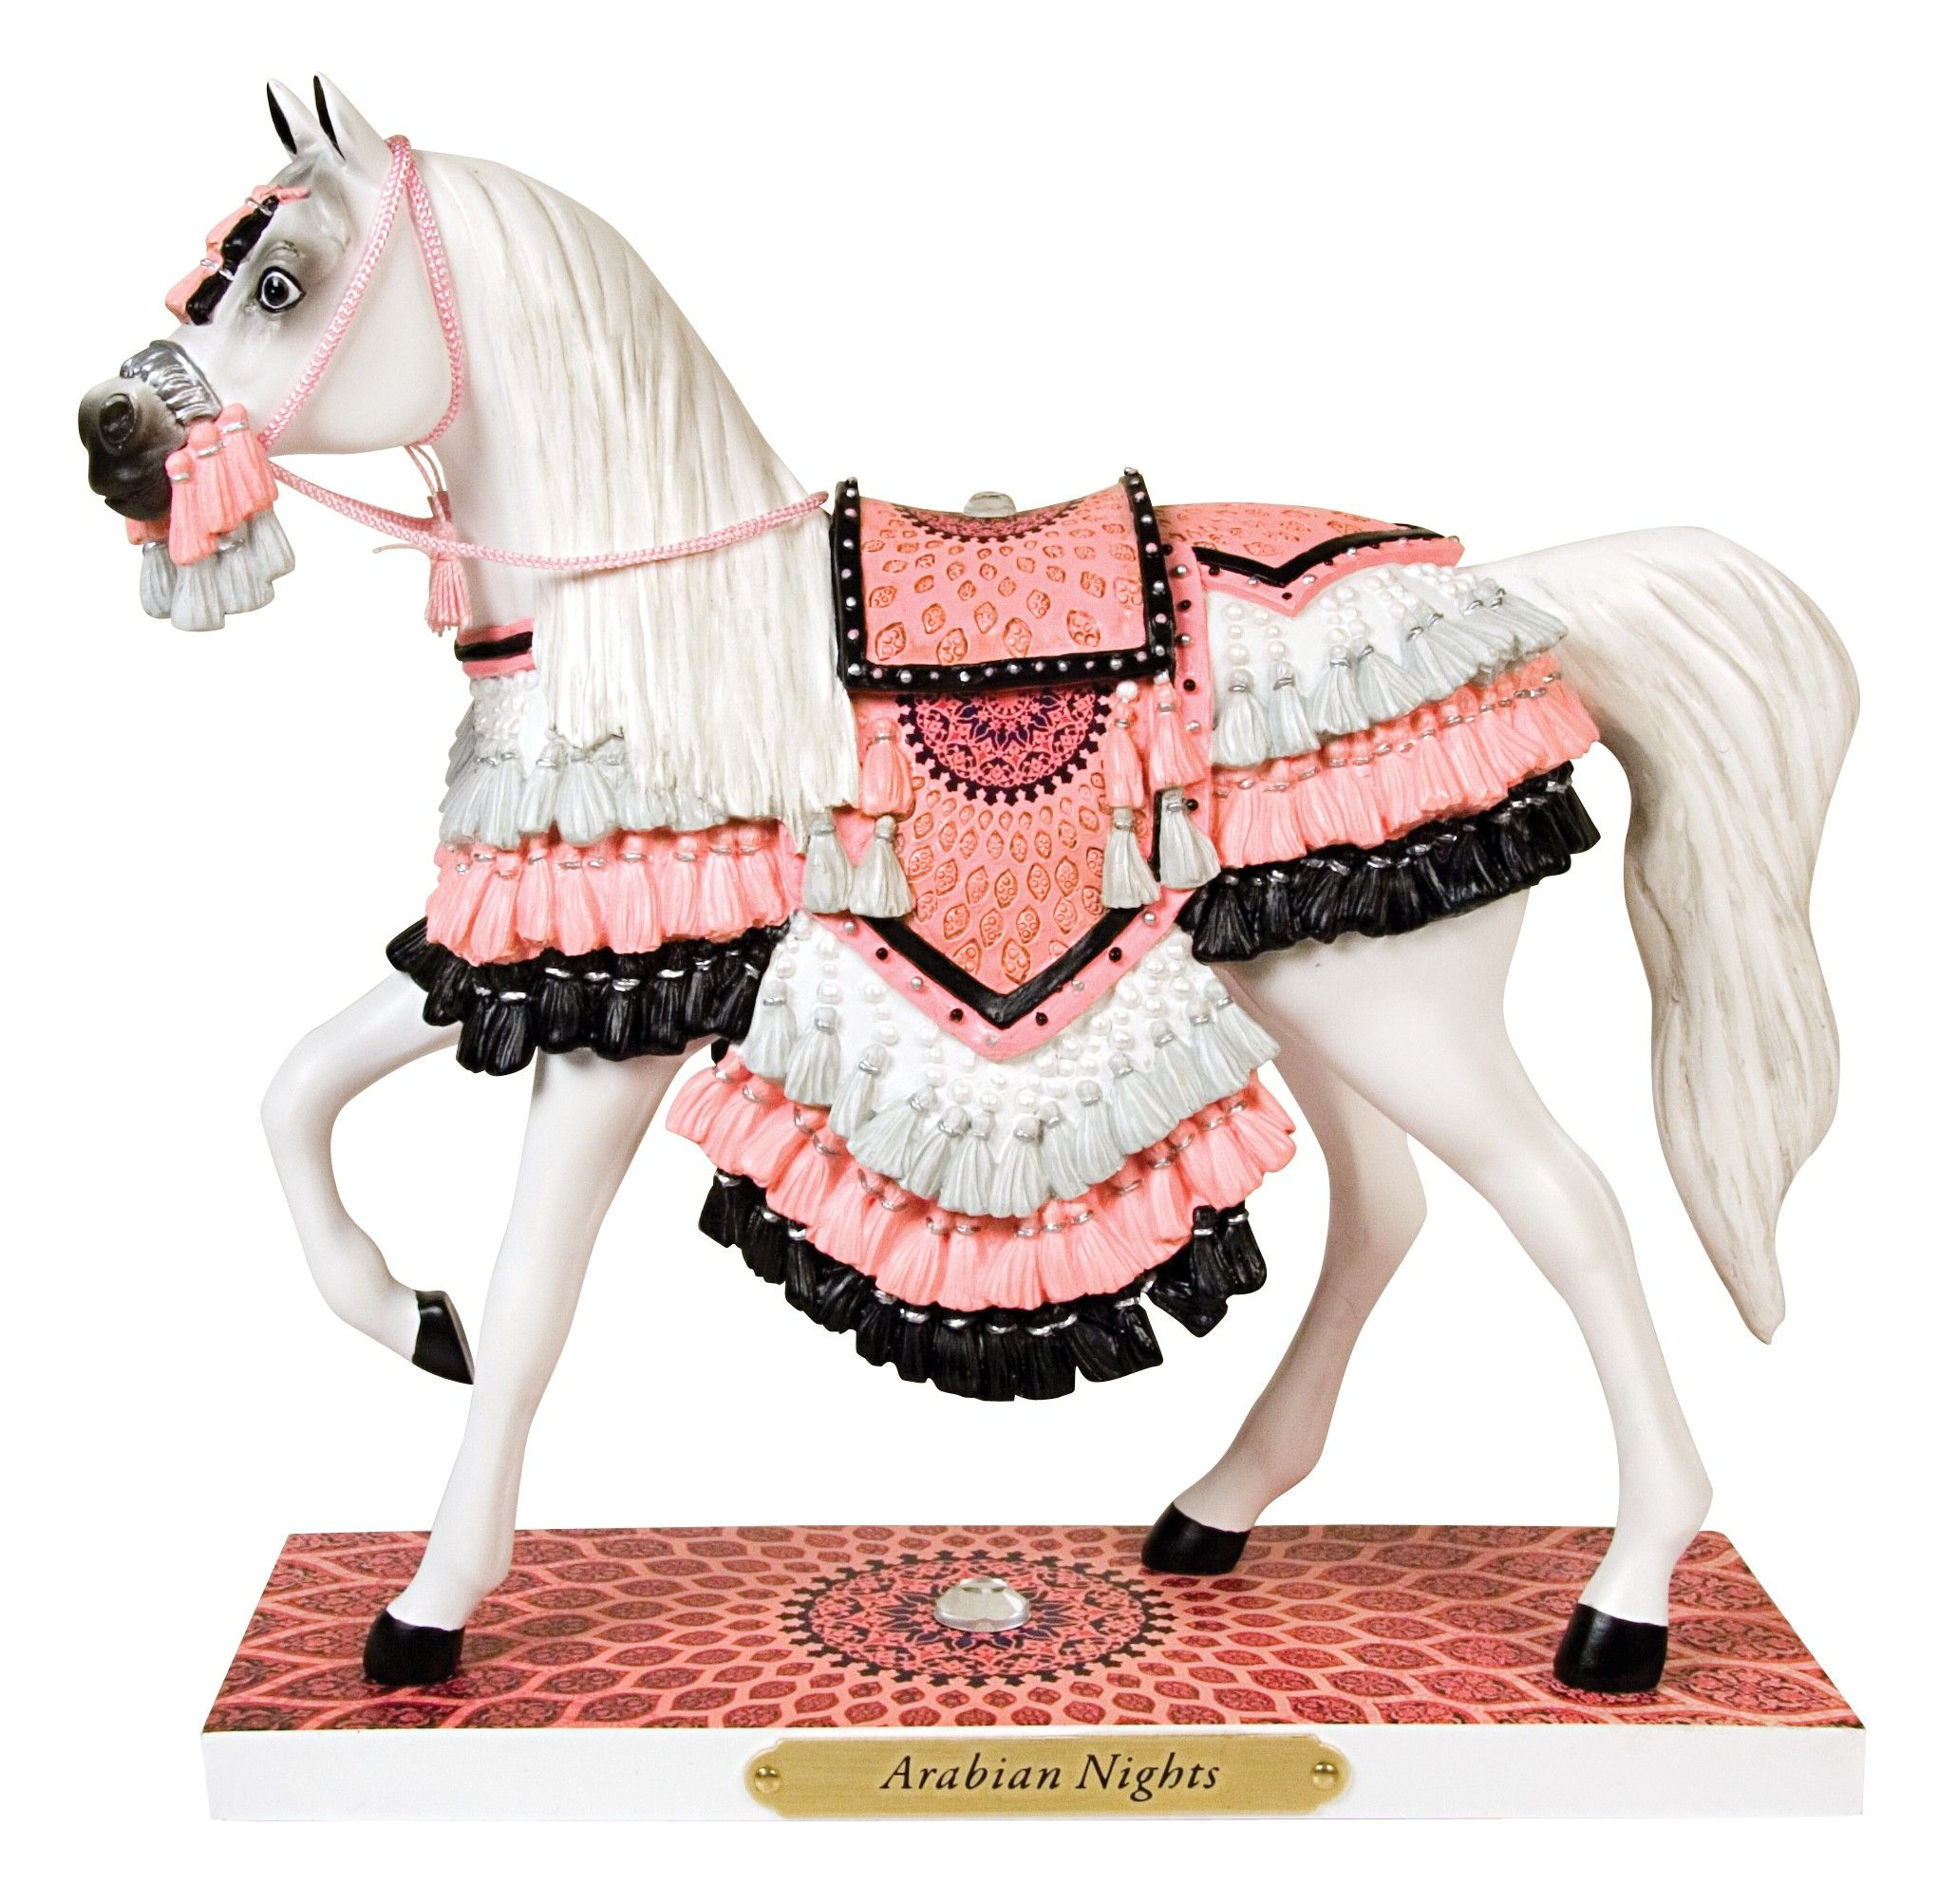 trail of painted ponies figurines   The Trail of Painted Ponies - Arabian Nights - Retired Figurines ...